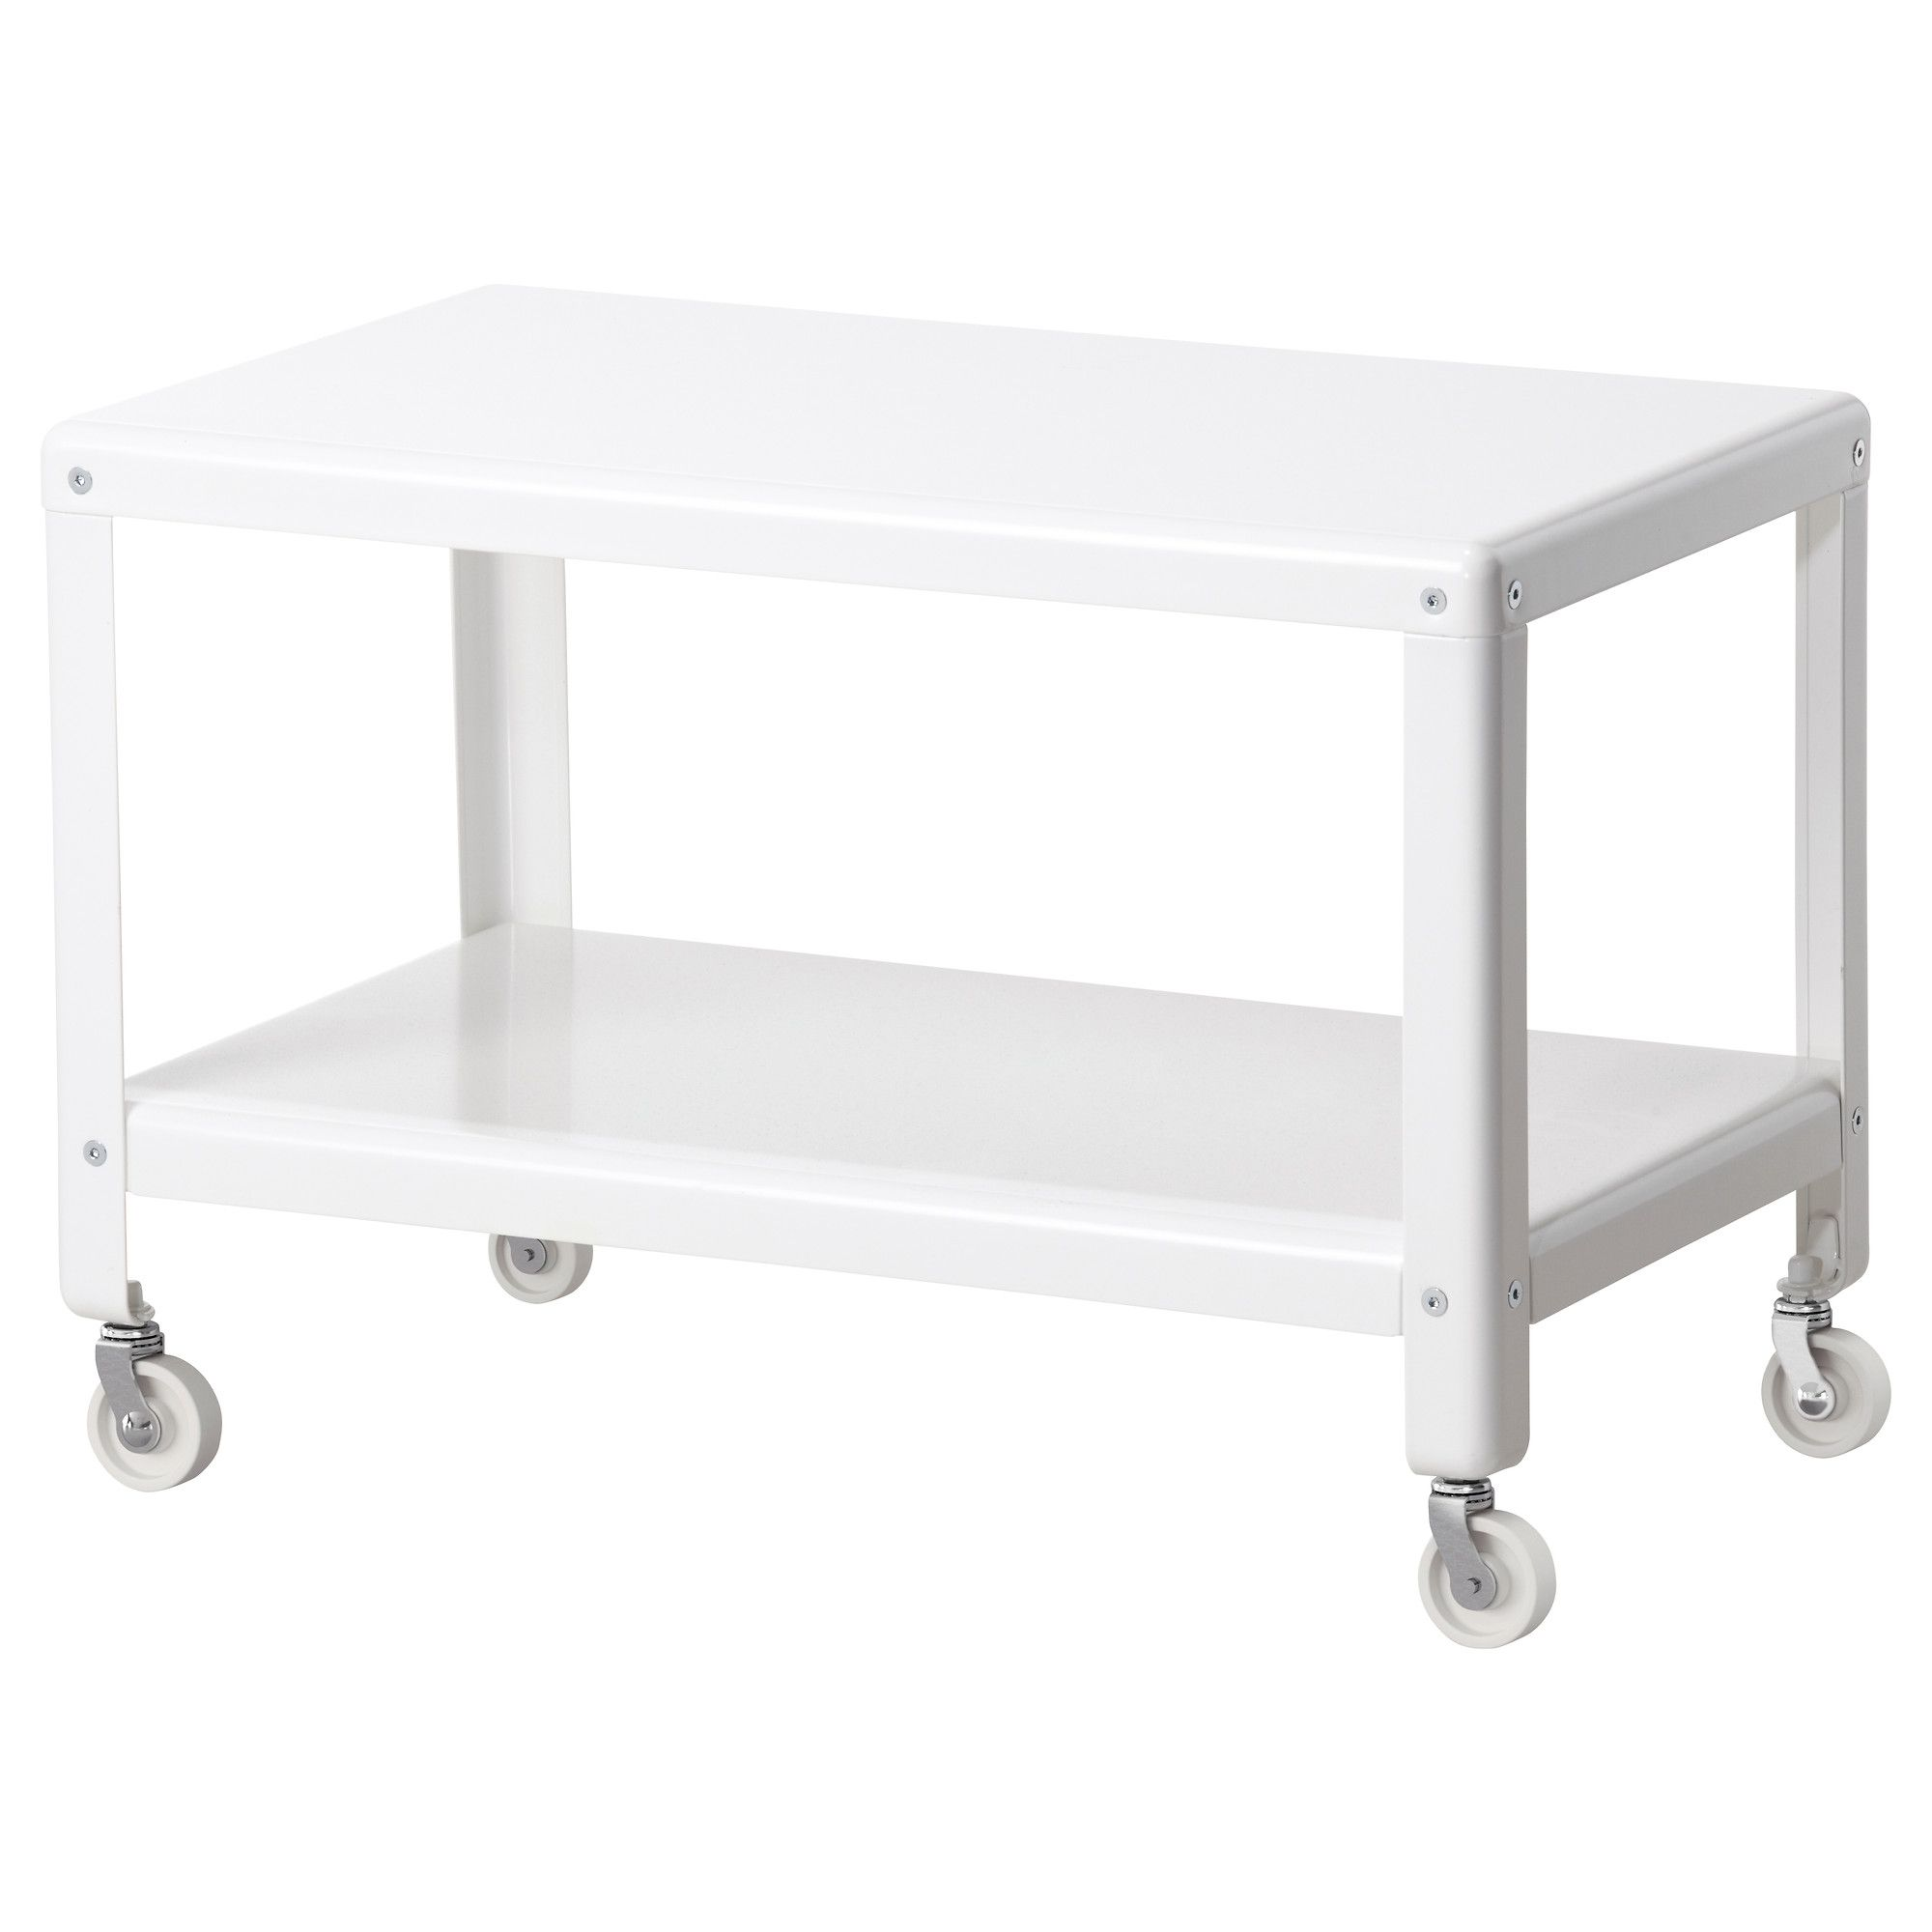 ikea ps 2012 coffee table white the price reflects